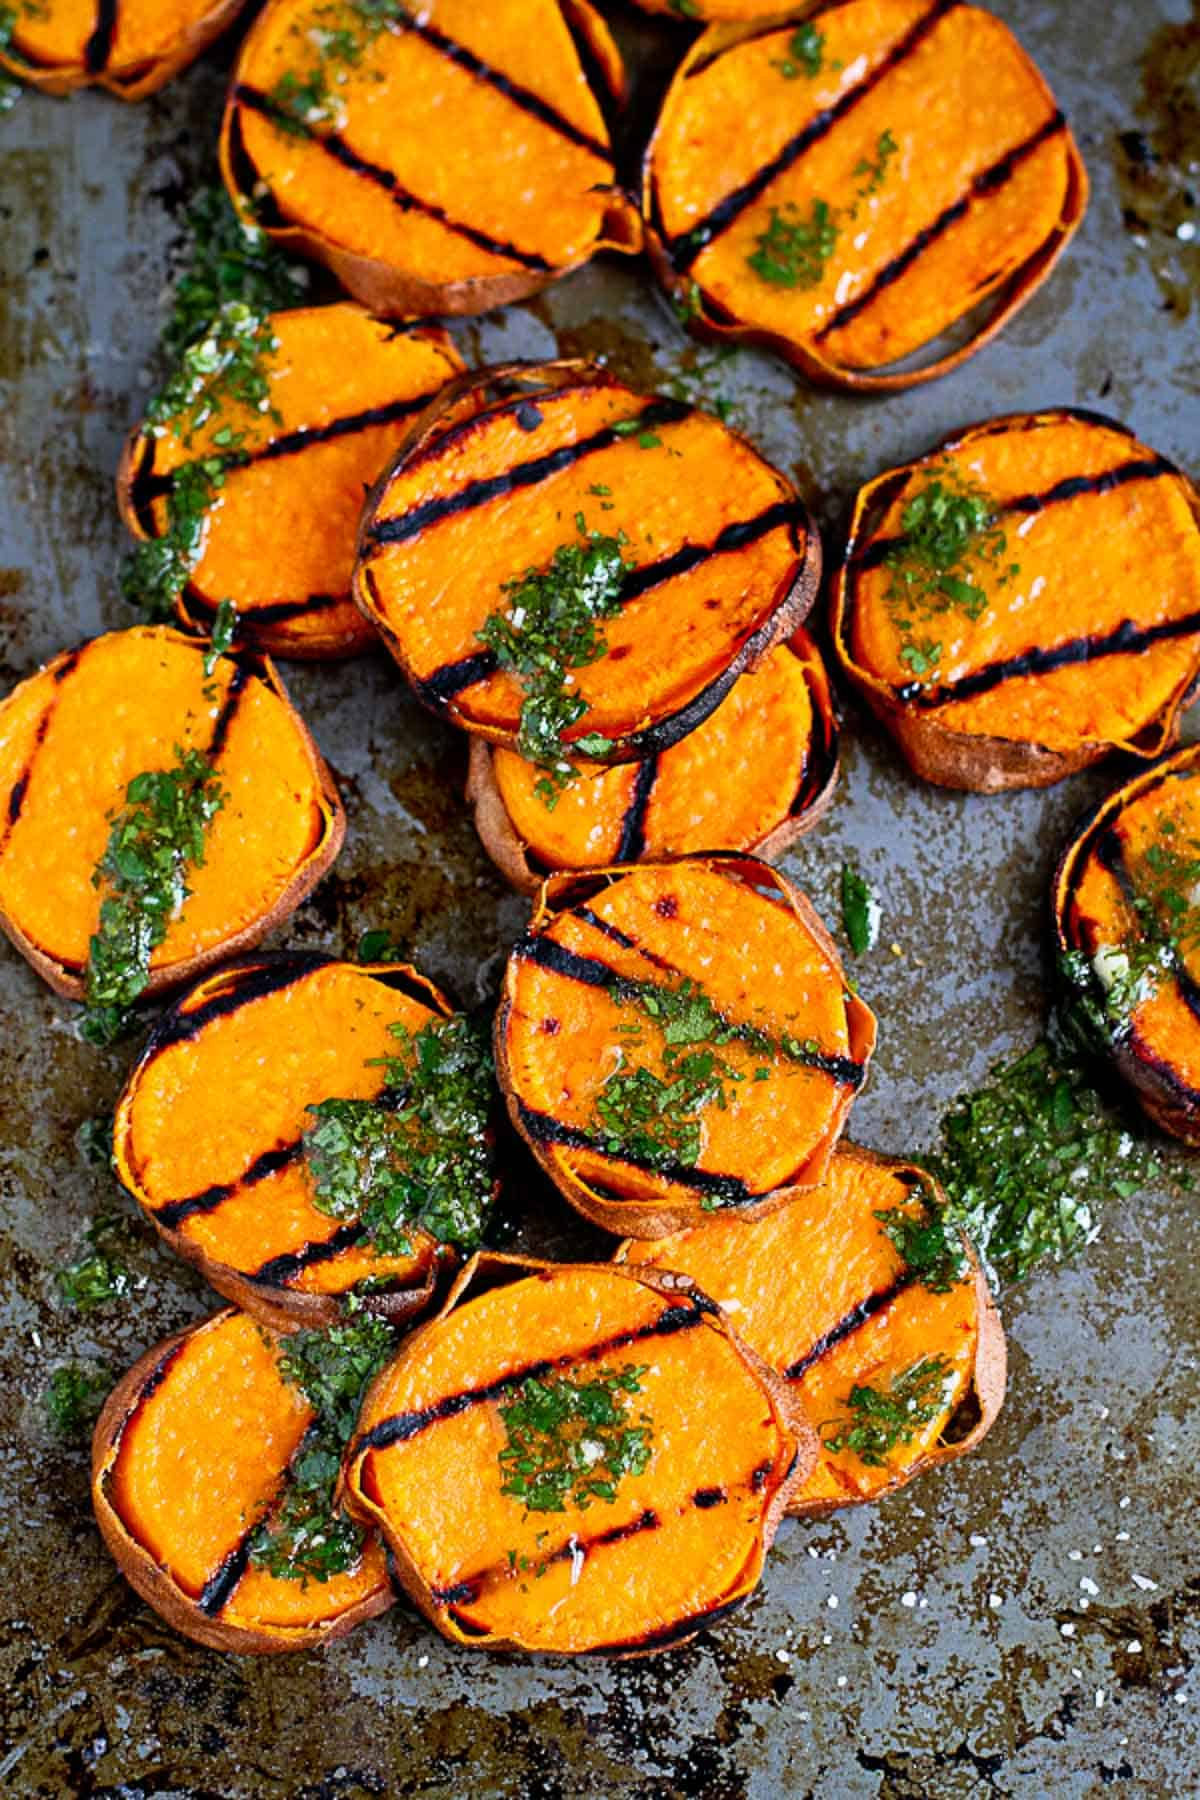 One taste of these grilled sweet potatoes with cilantro vinaigrette will convince you to make this your go-to summer side dish recipe. | Slices | Vegetarian | Vegan | Plant based